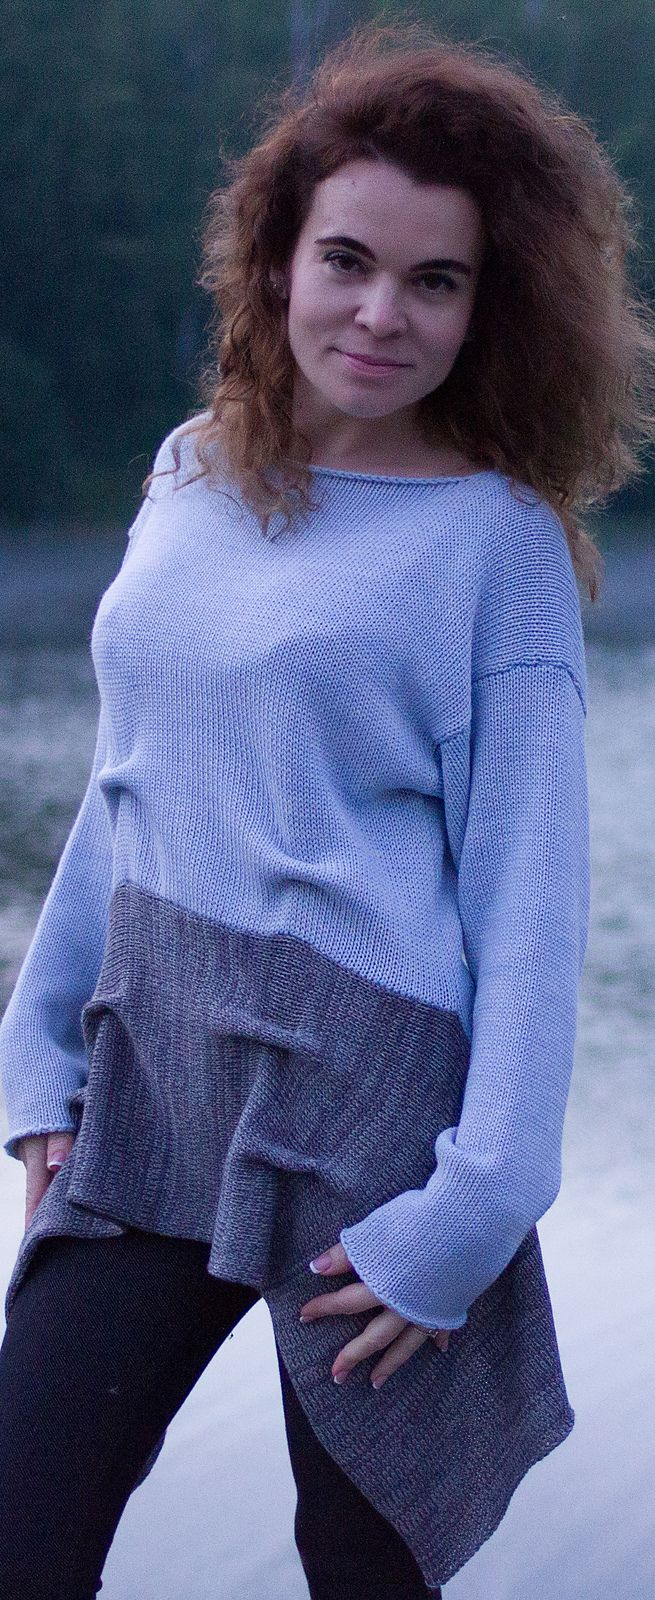 Nimue sweater pattern by ToBeStudio   Clothes